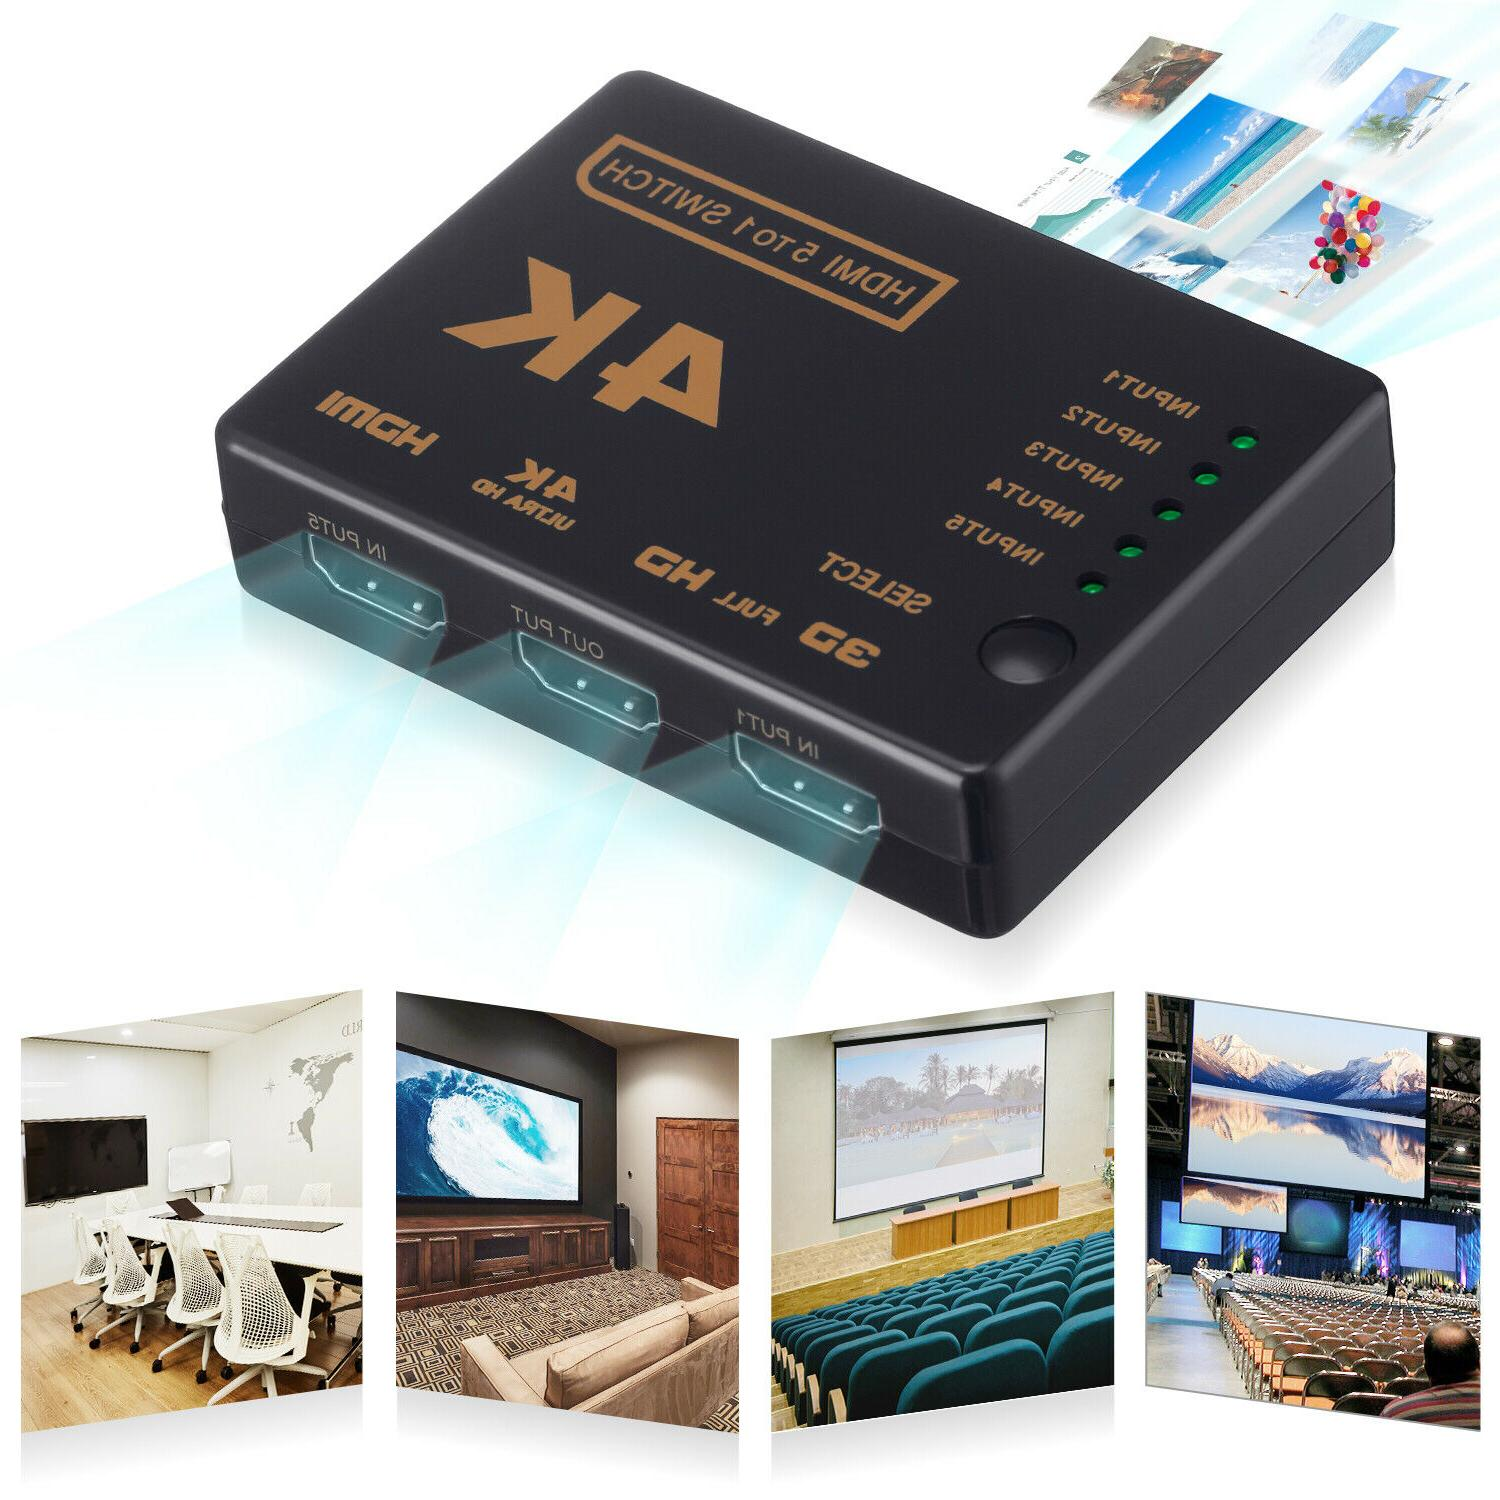 5Port 4K HDMI Switcher Splitter Remote Control